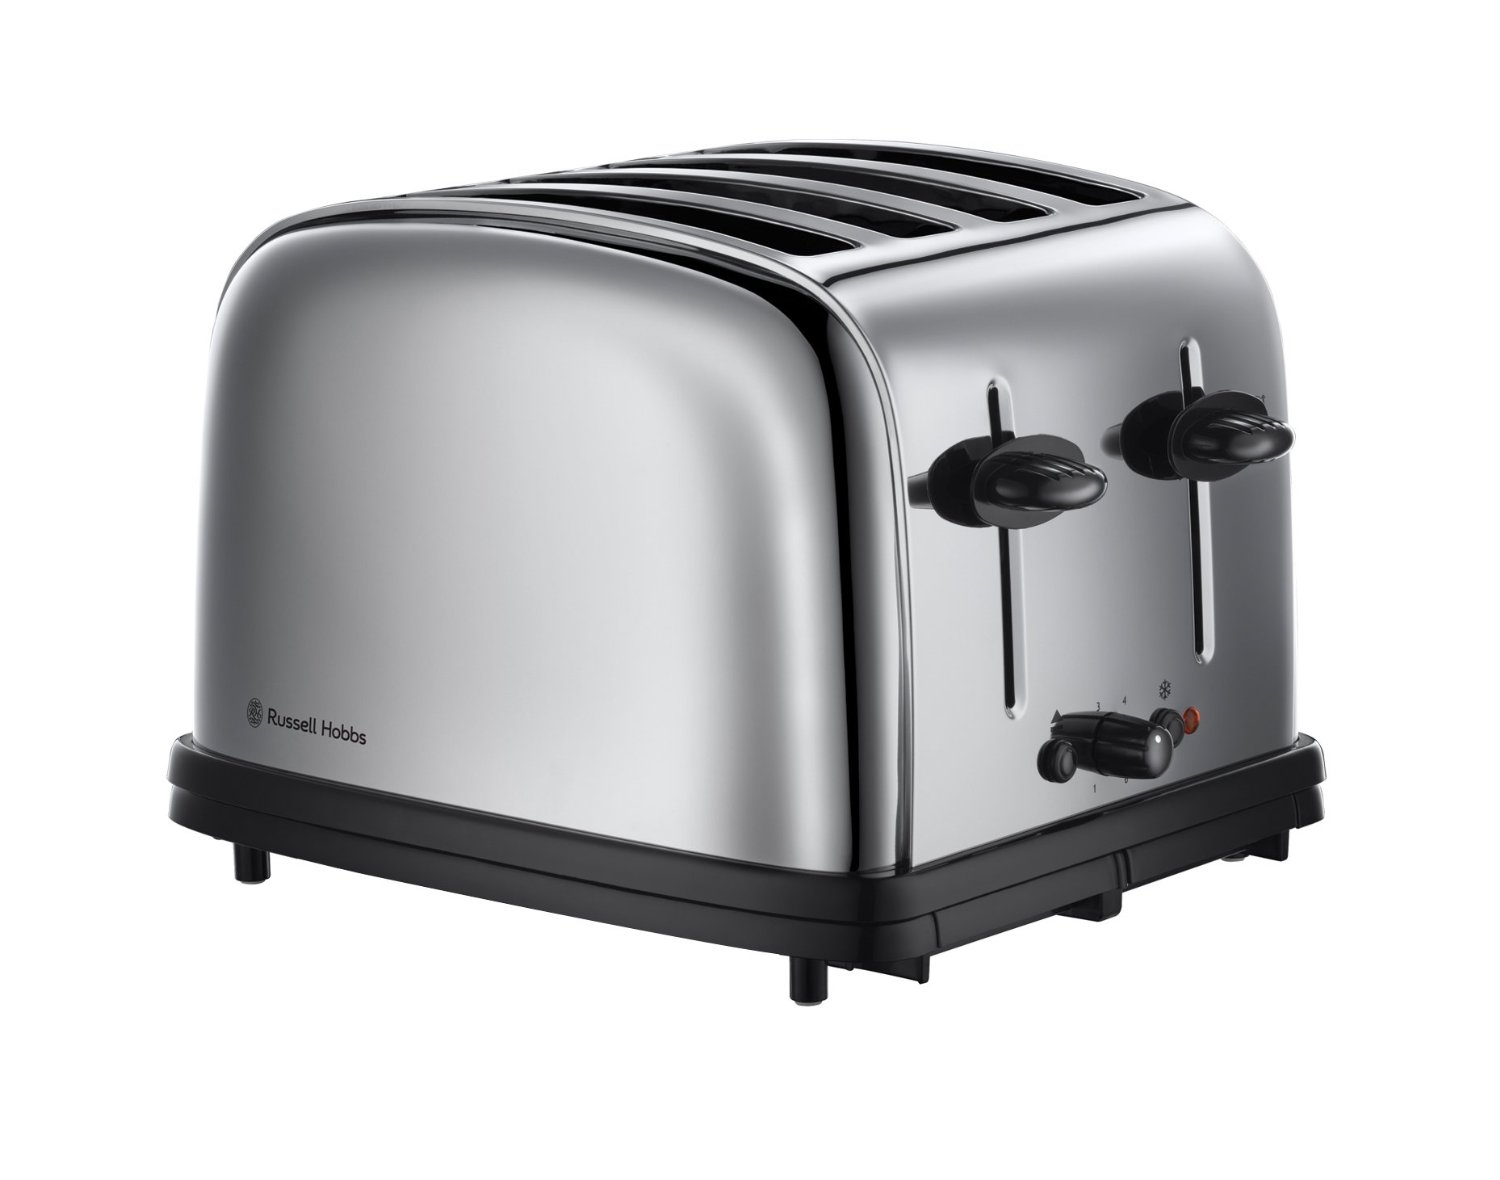 russell hobbs grille pain 13767 56 inox 1800w 4 fentes. Black Bedroom Furniture Sets. Home Design Ideas